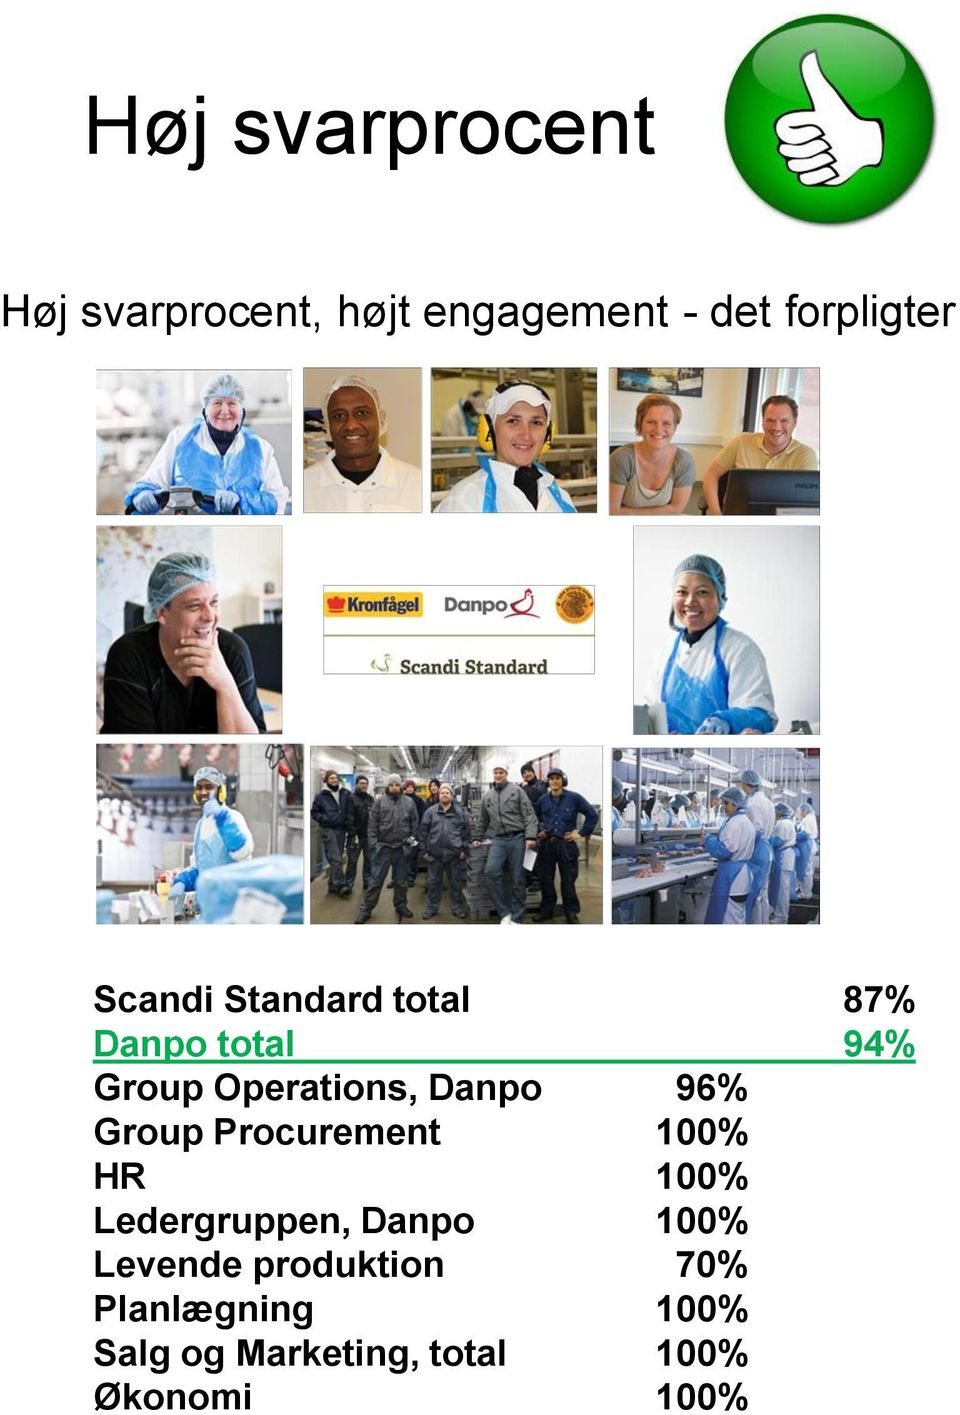 96% Group Procurement 100% HR 100% Ledergruppen, Danpo 100% Levende